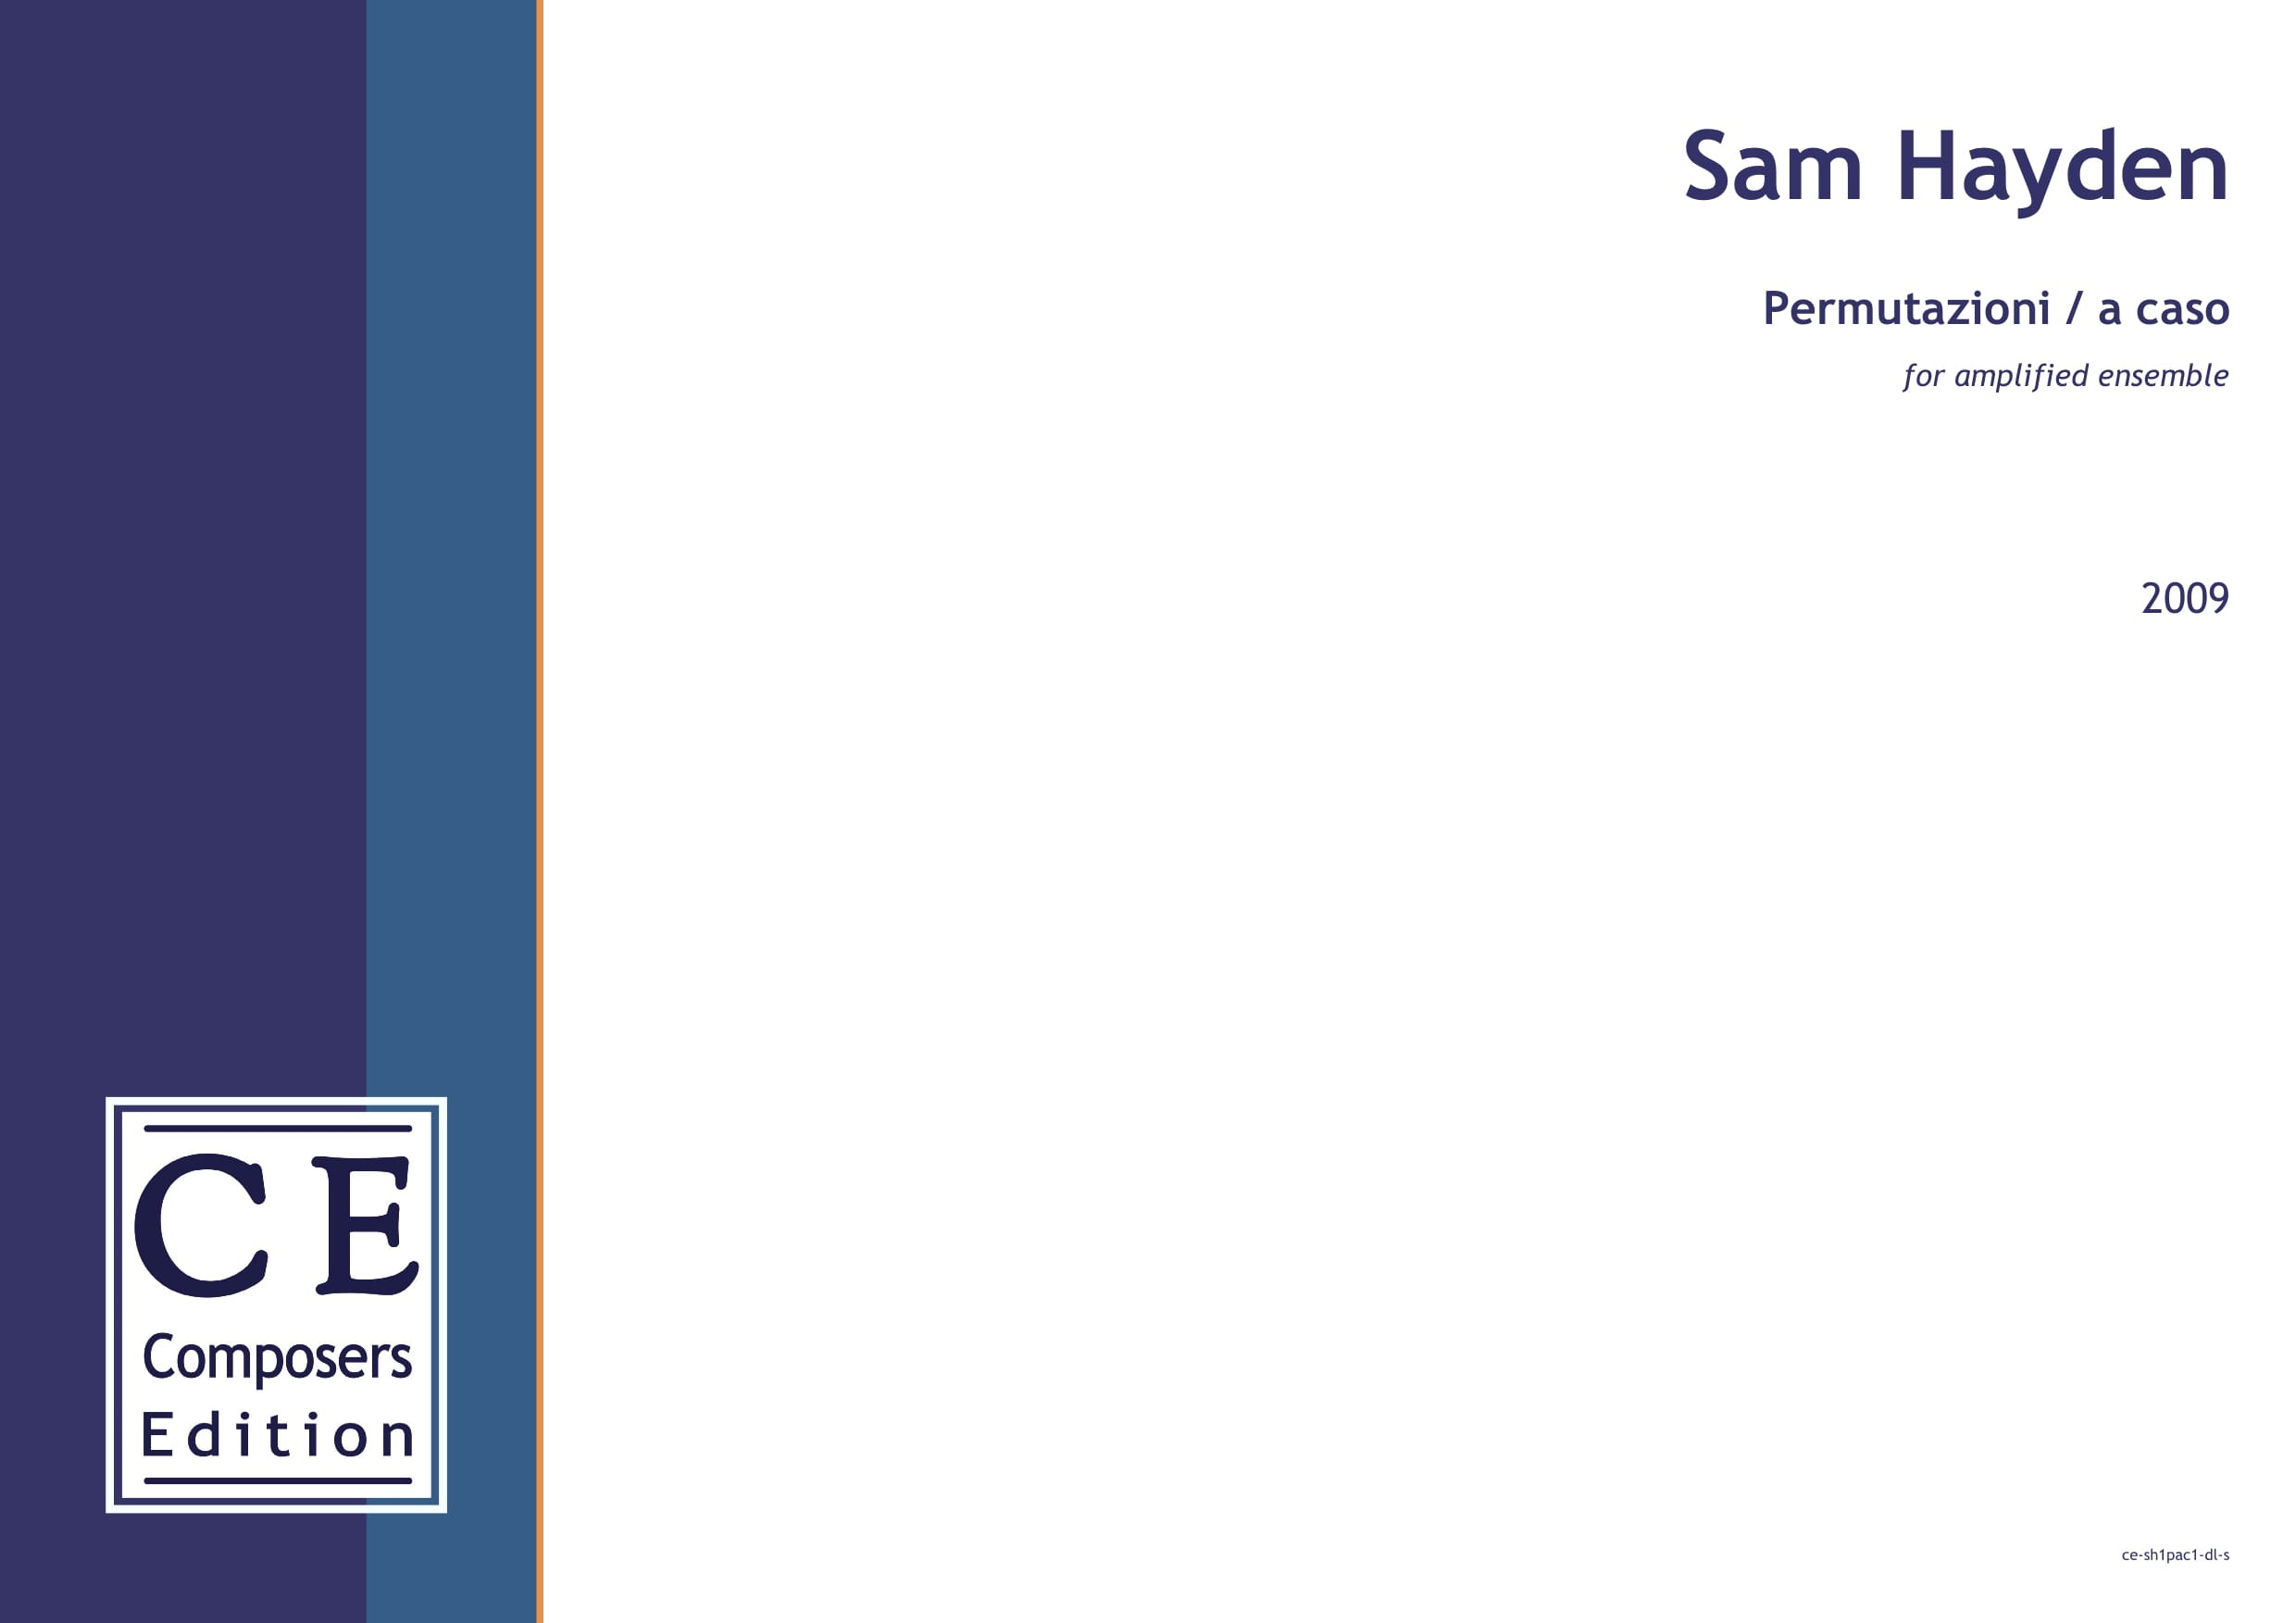 Sam Hayden: Permutazioni / a caso for amplified ensemble